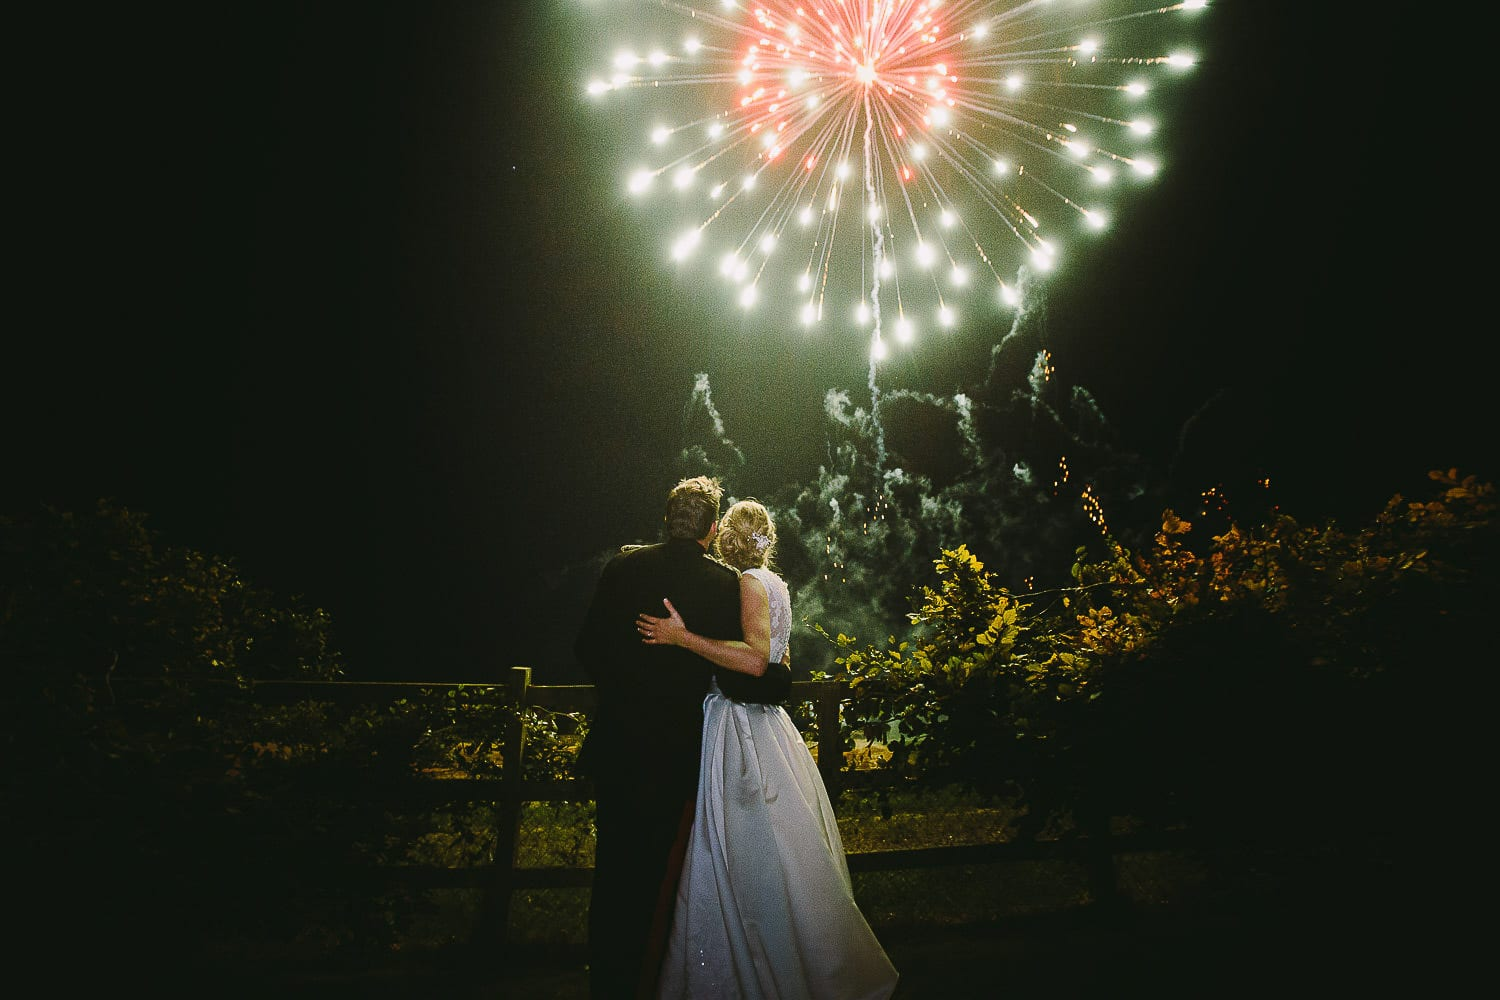 The bride and groom watch fireworks